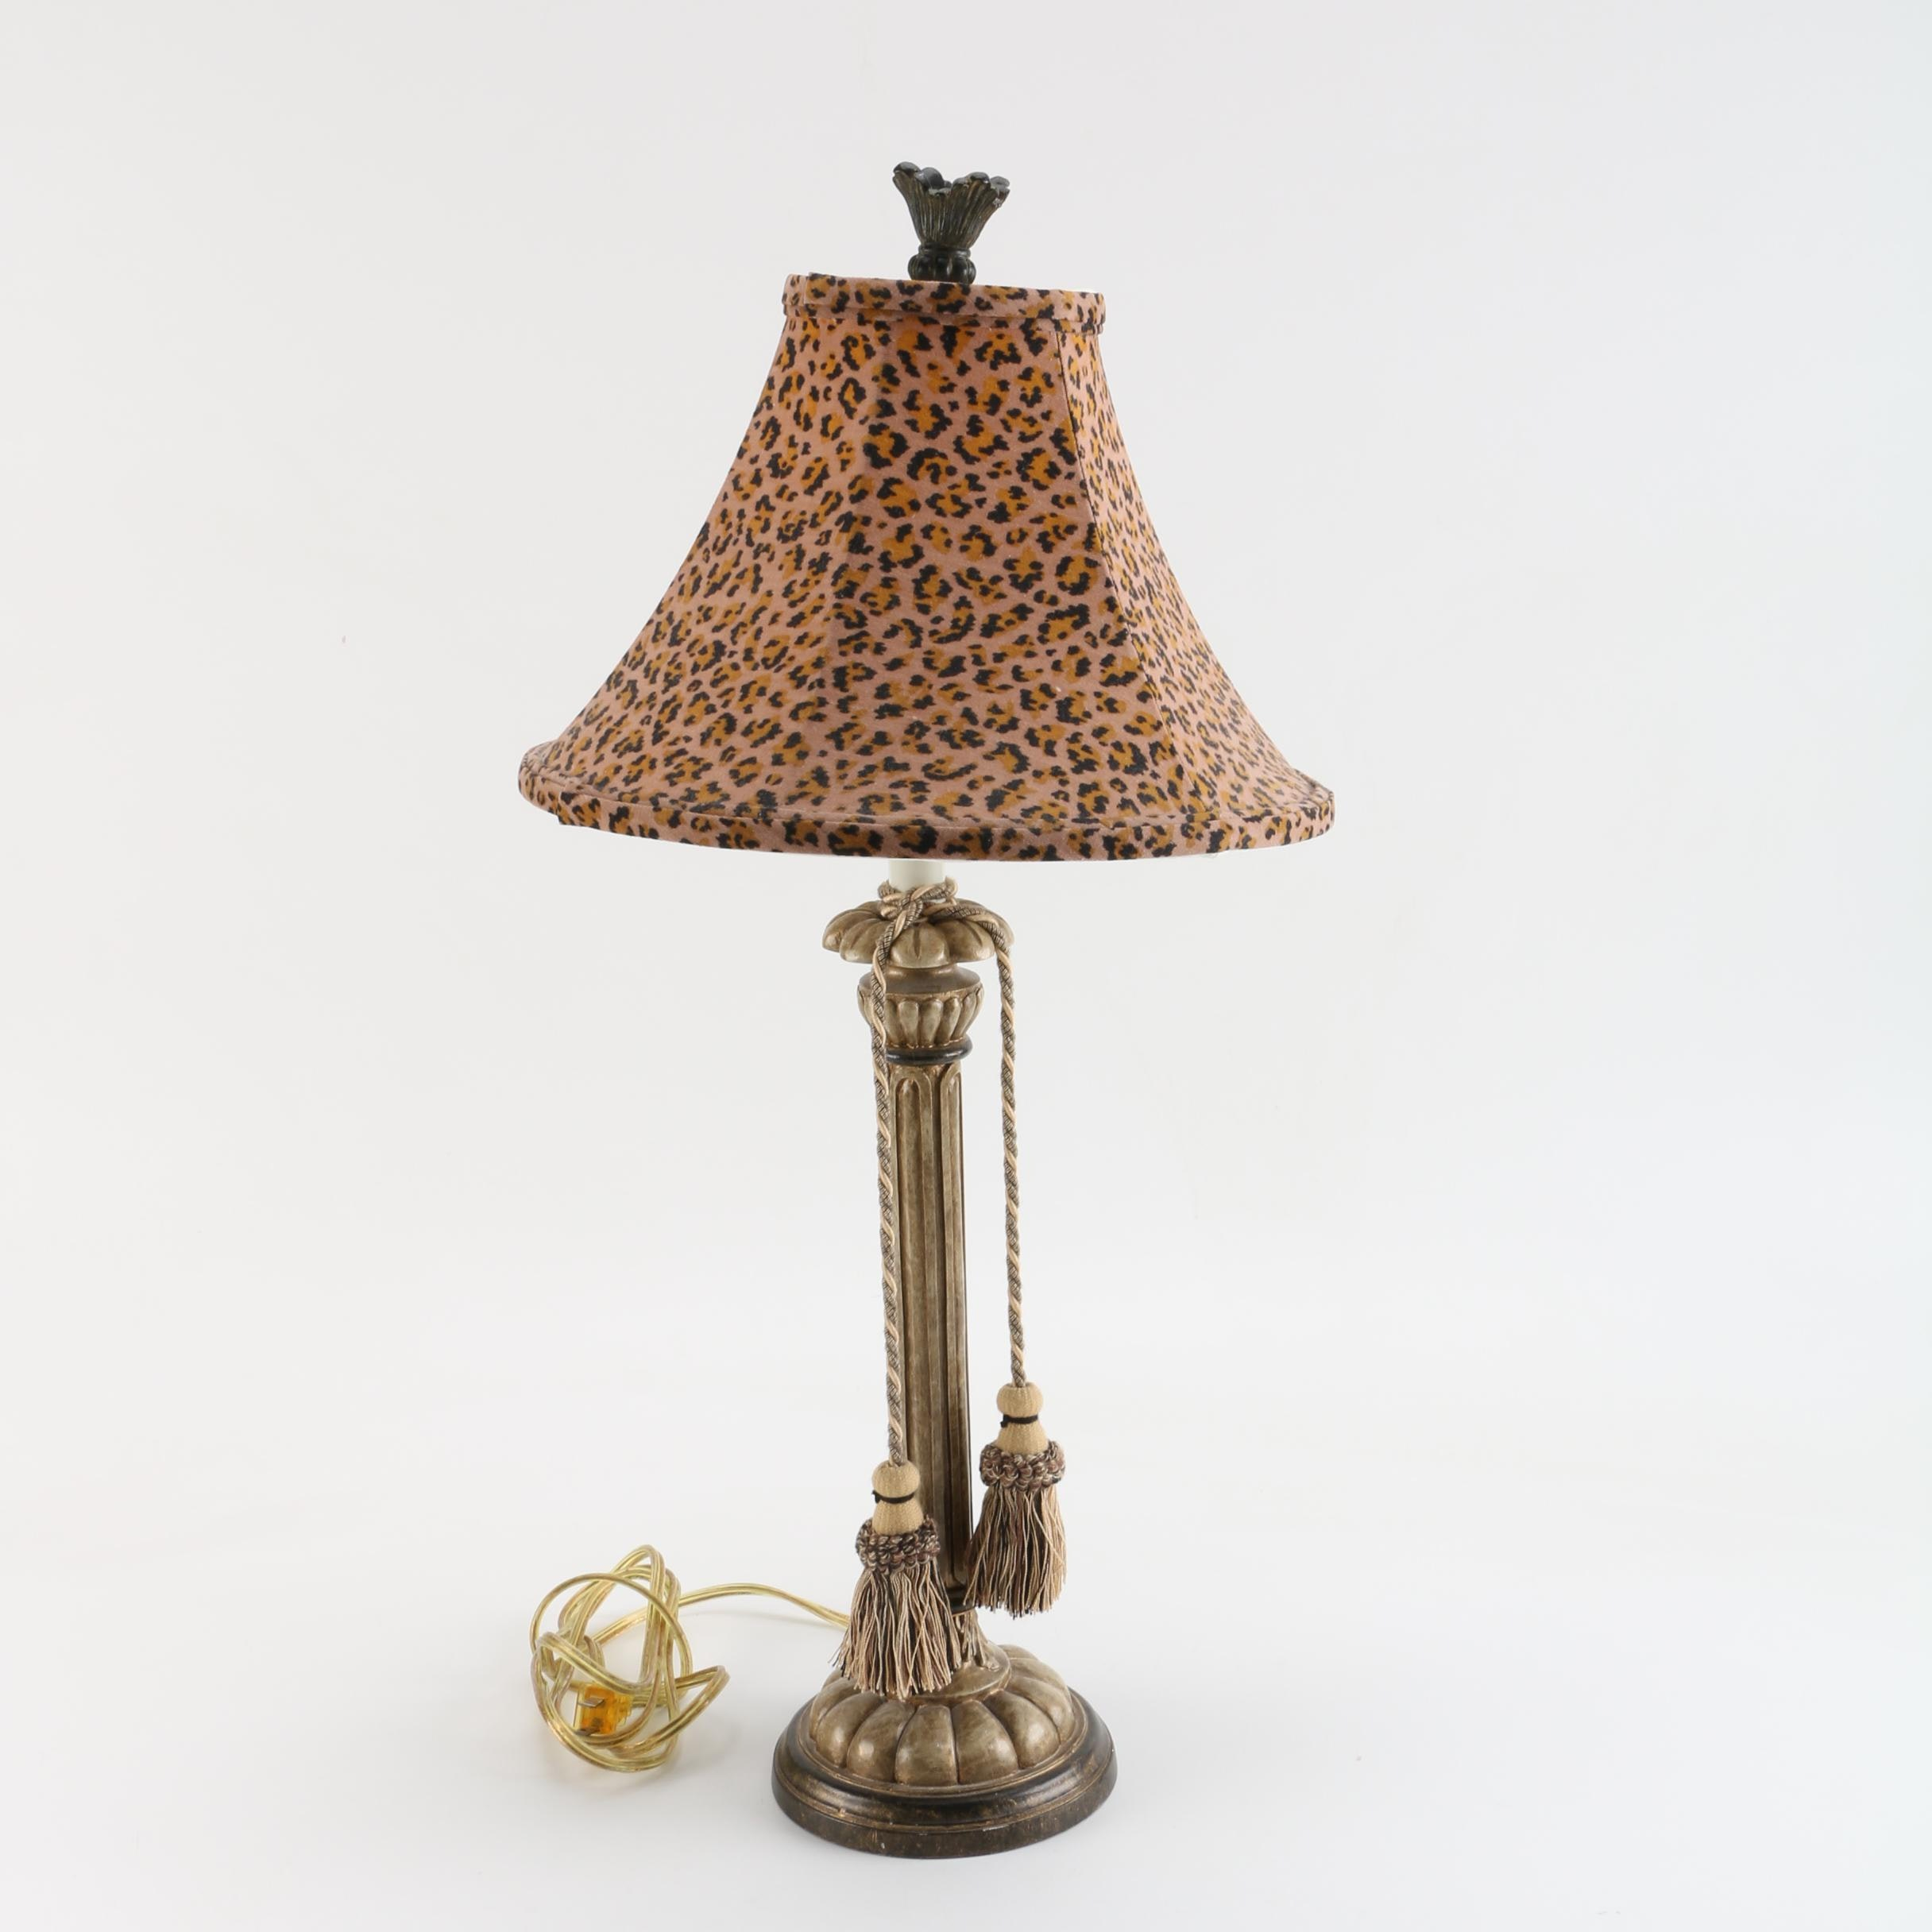 Pillar Table Lamp with Leopard Print Shade